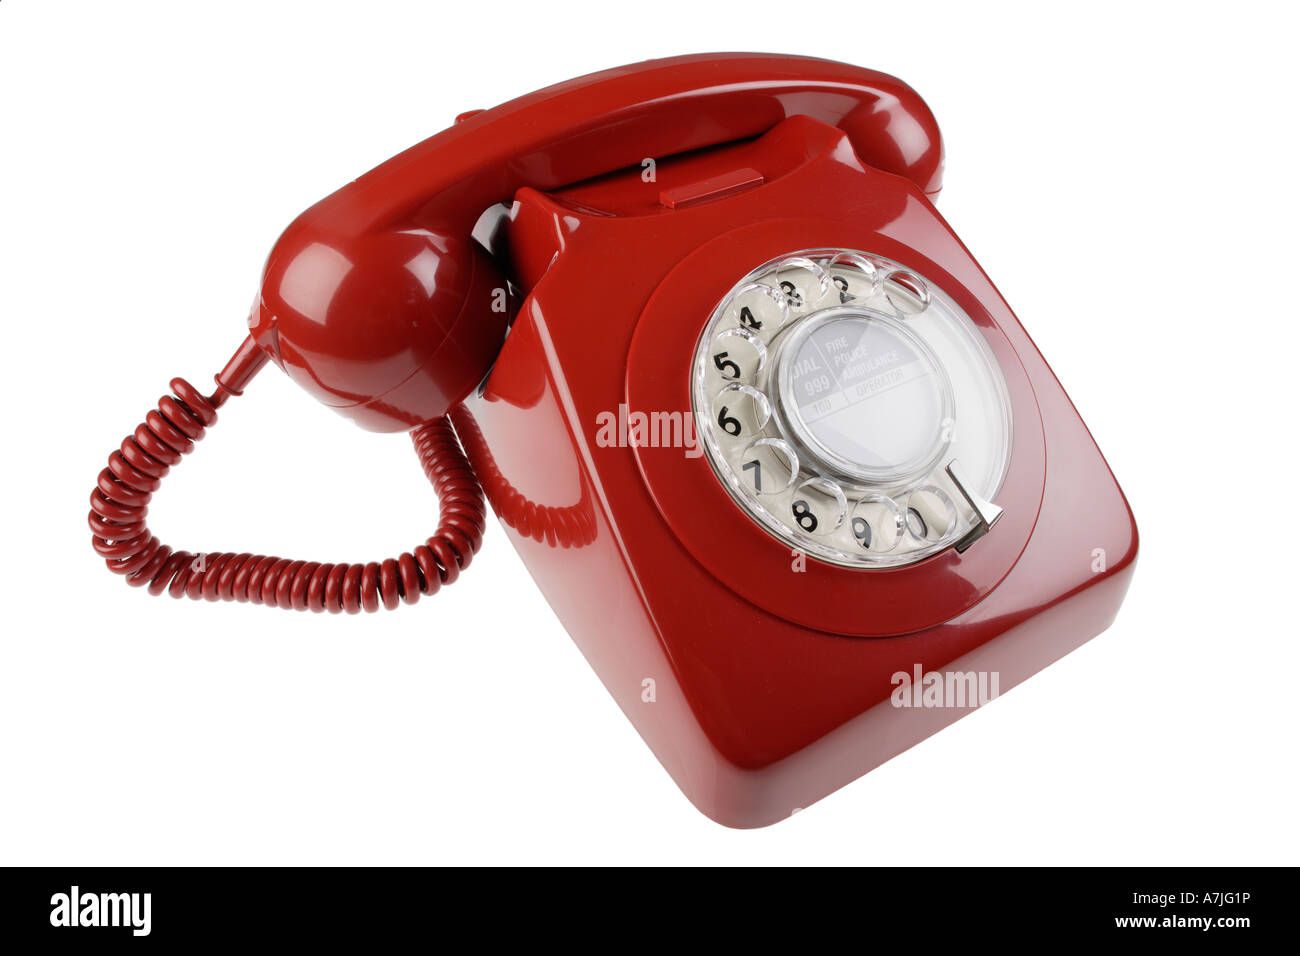 Red old fashioned disc dialling phone - Stock Image